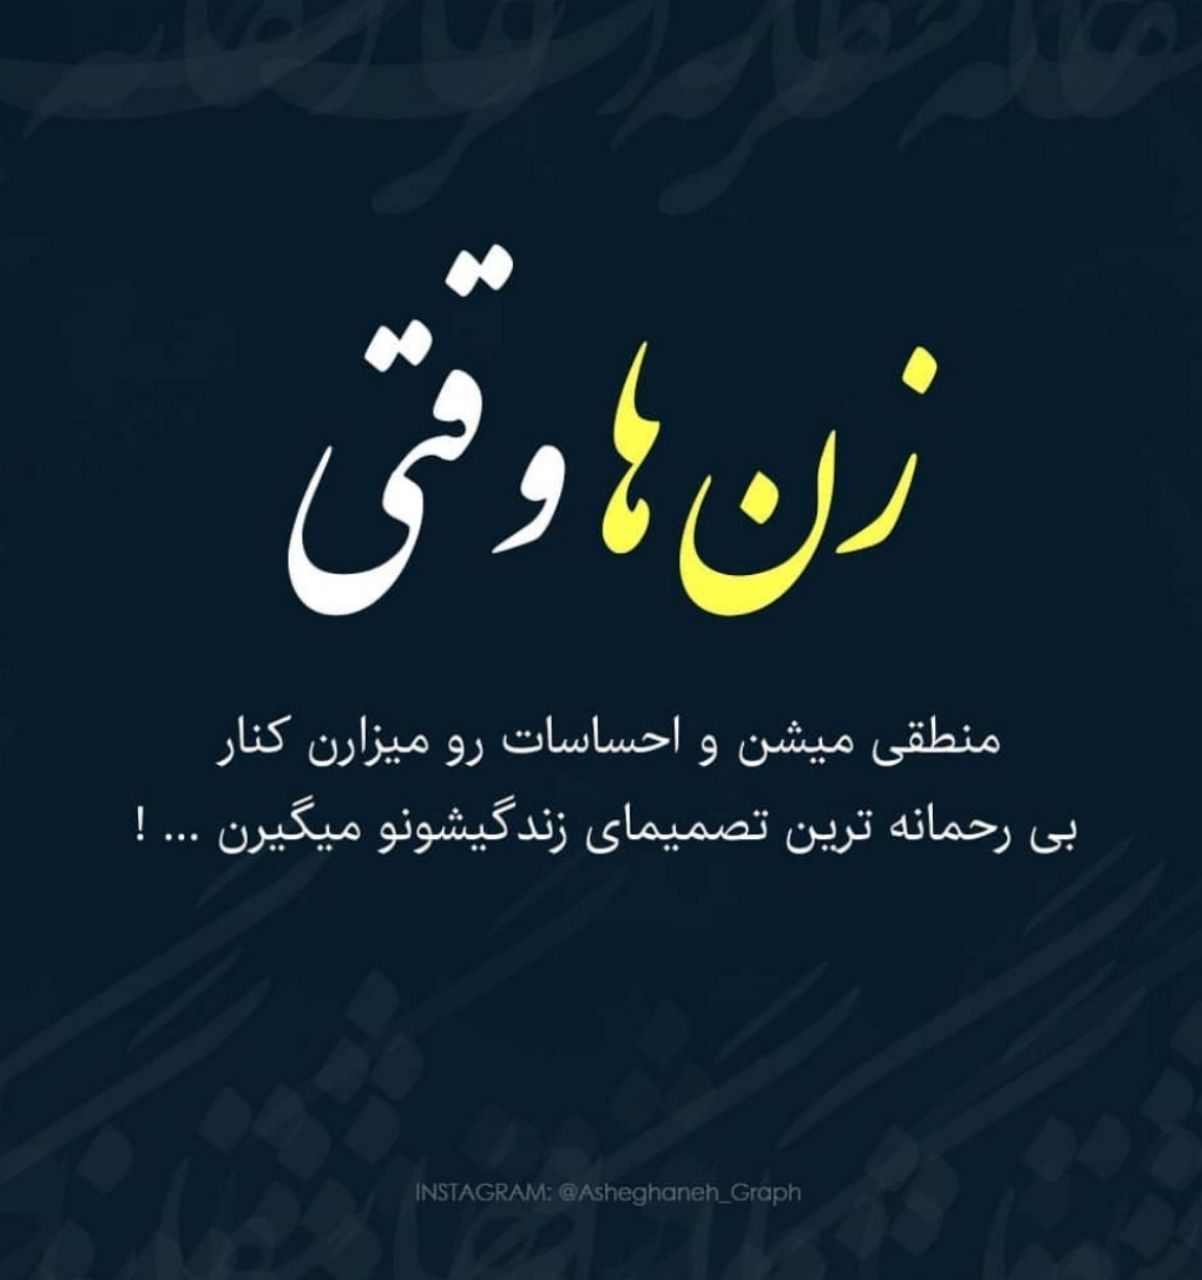 Pin By Arzhohani On Poetry عکسو شعرو گرافی Text Pictures Persian Quotes Funny Education Quotes